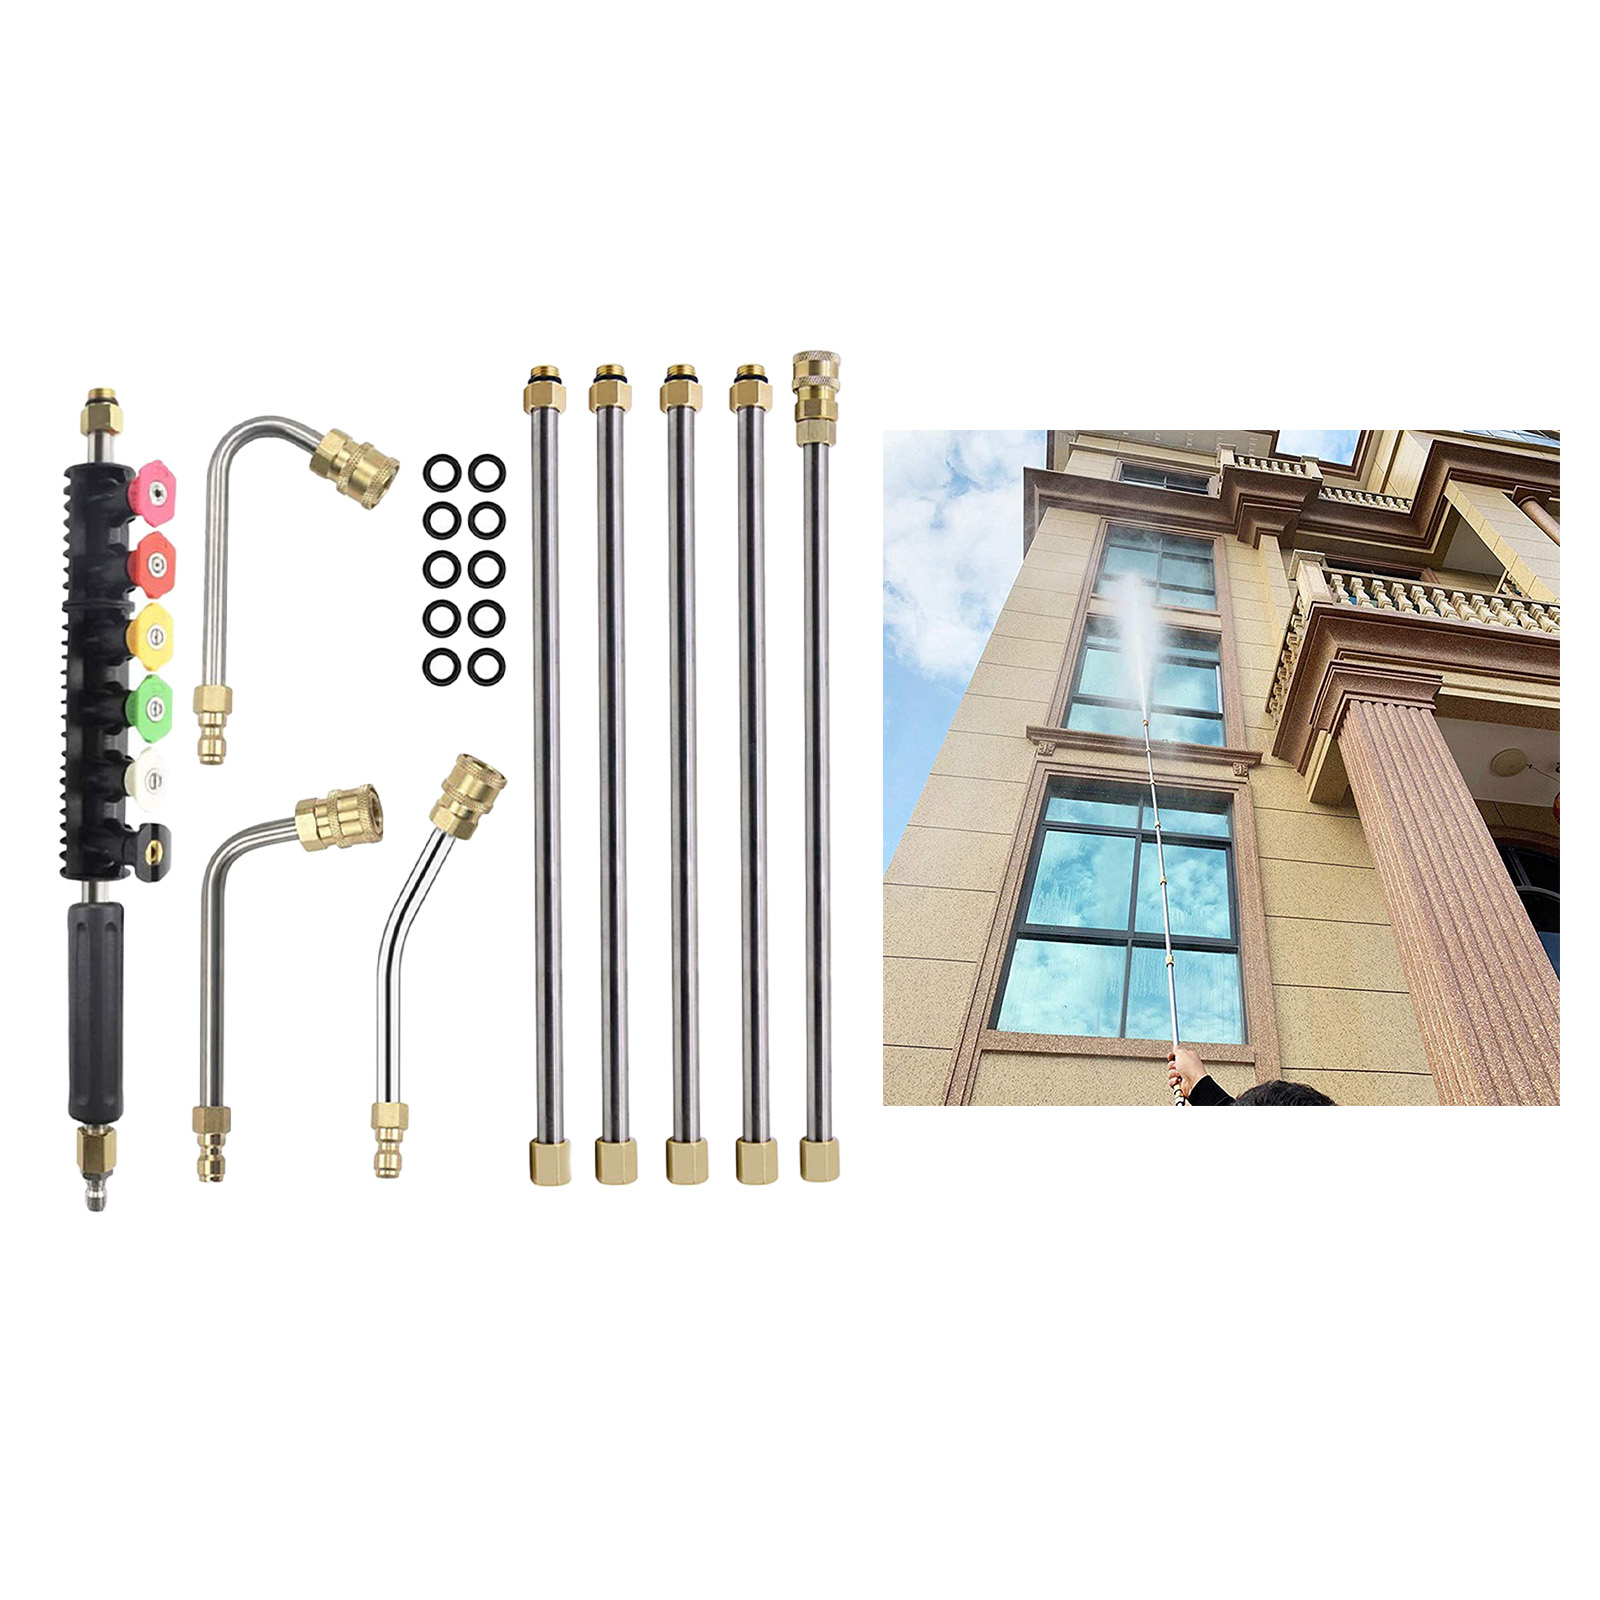 Power Washer Accessories with Spray Nozzle Tips 1/4